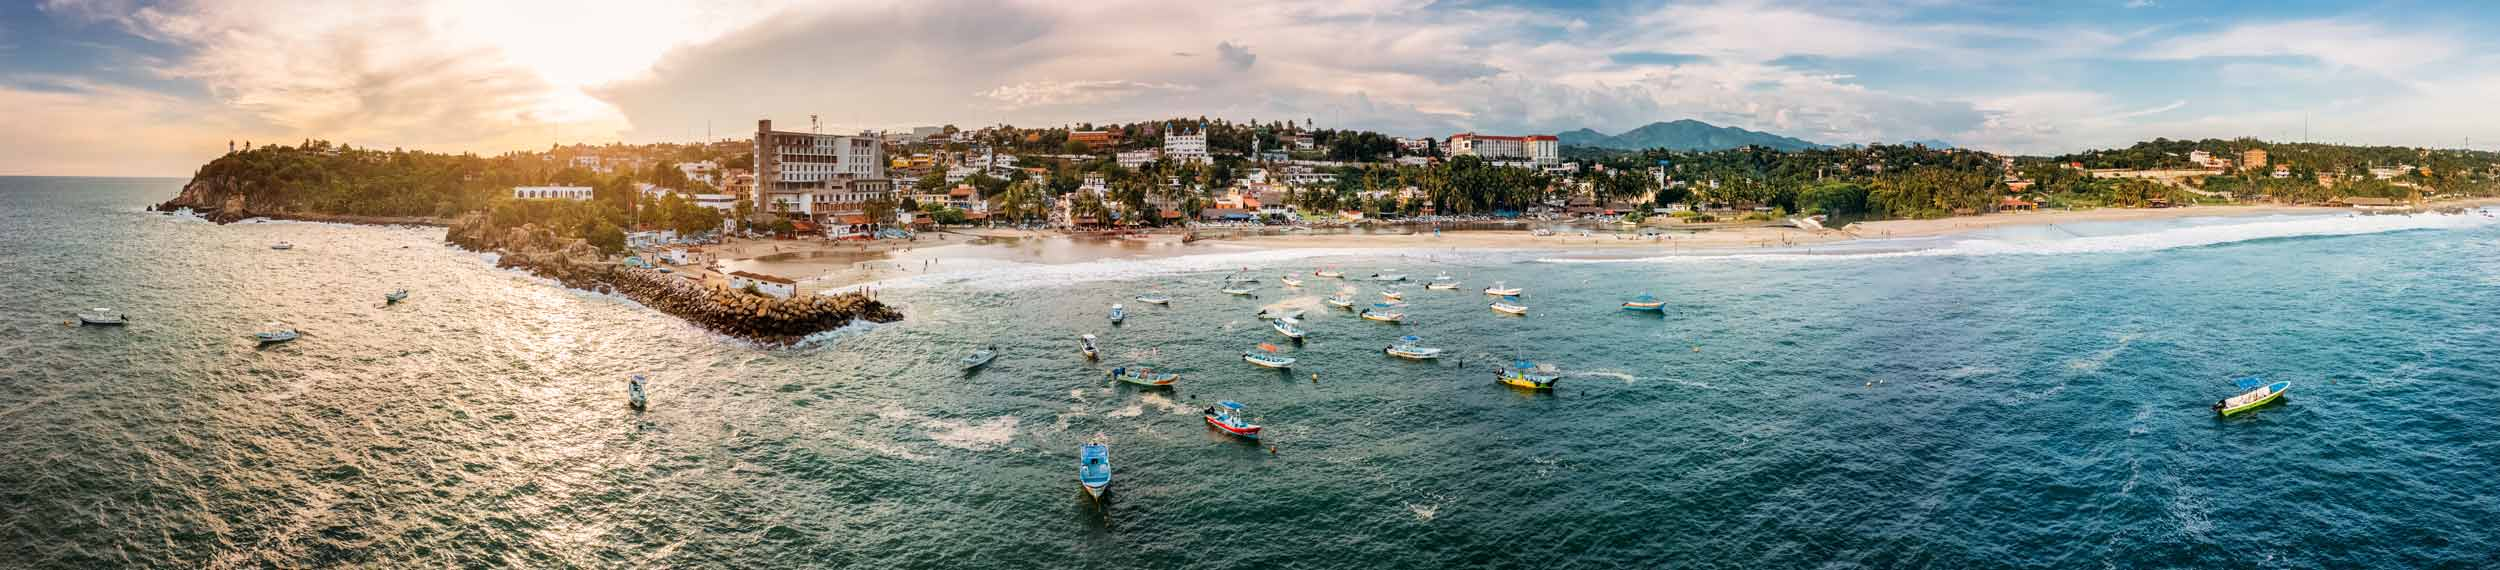 Aerial view of Puerto Escondido with colorful boats in the water, the port town, and beach access in Oaxaca, Mexico.